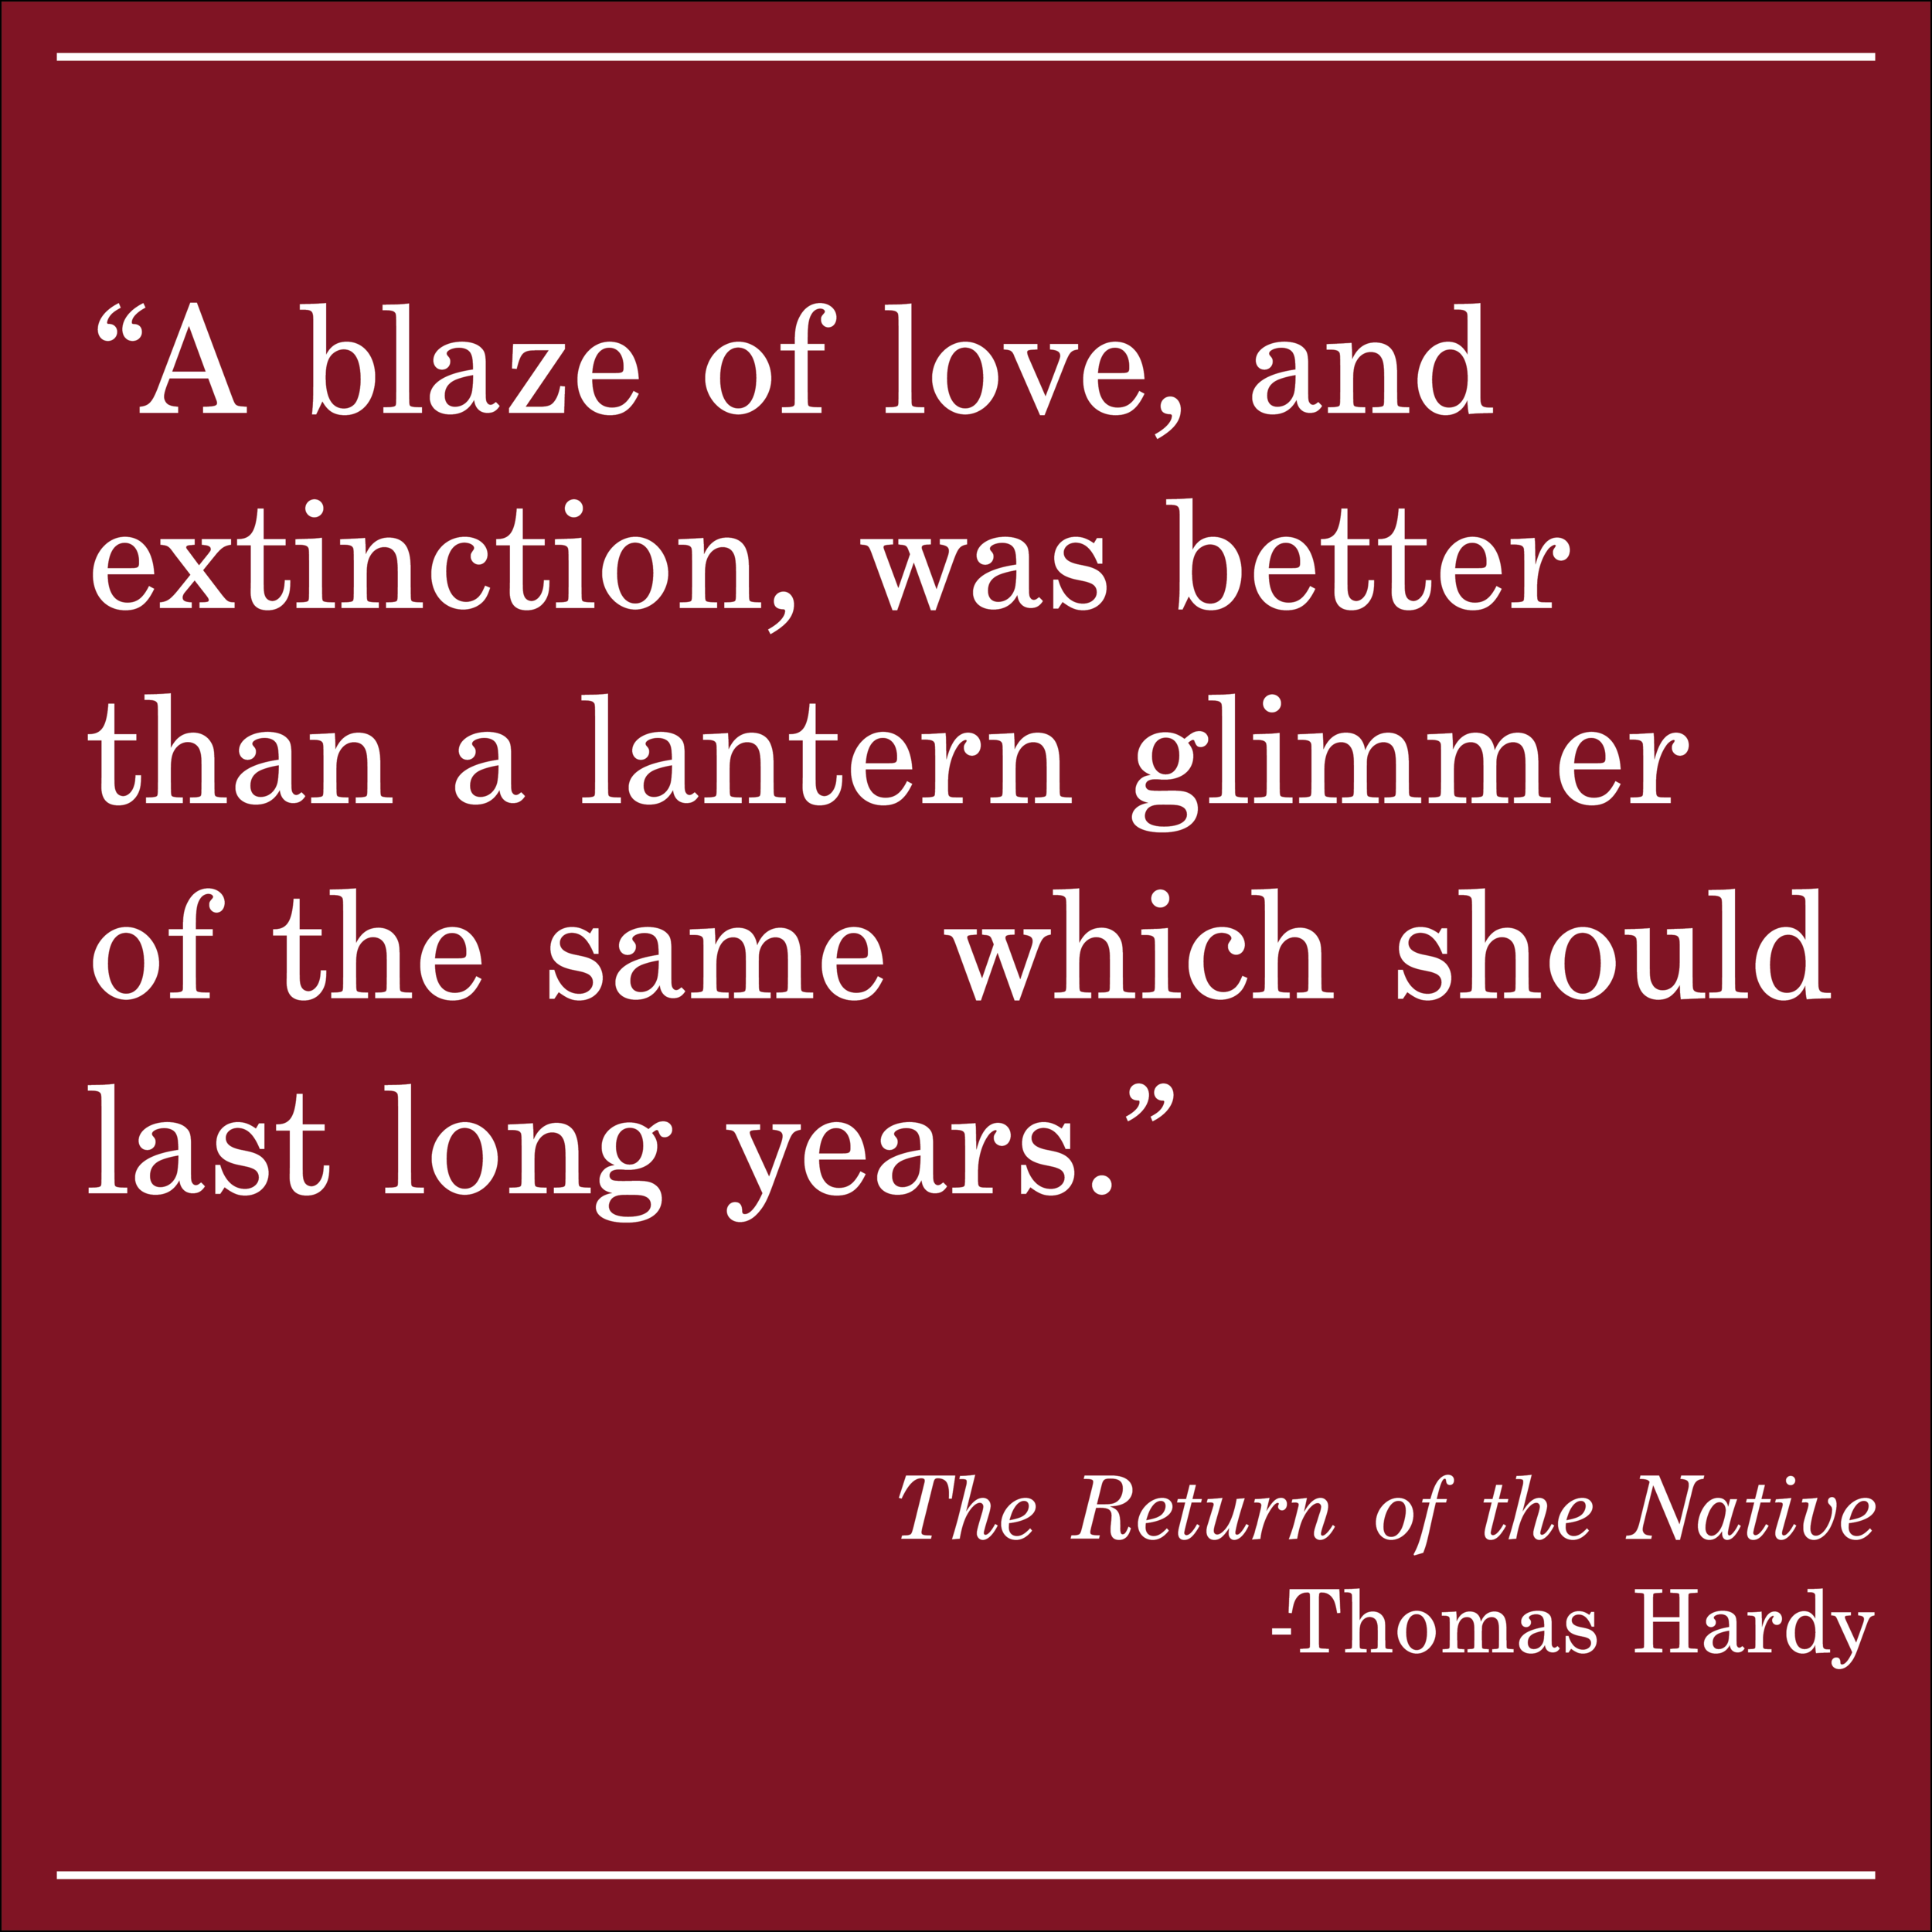 Daily Quote The Return of the Native by Thomas Hardy